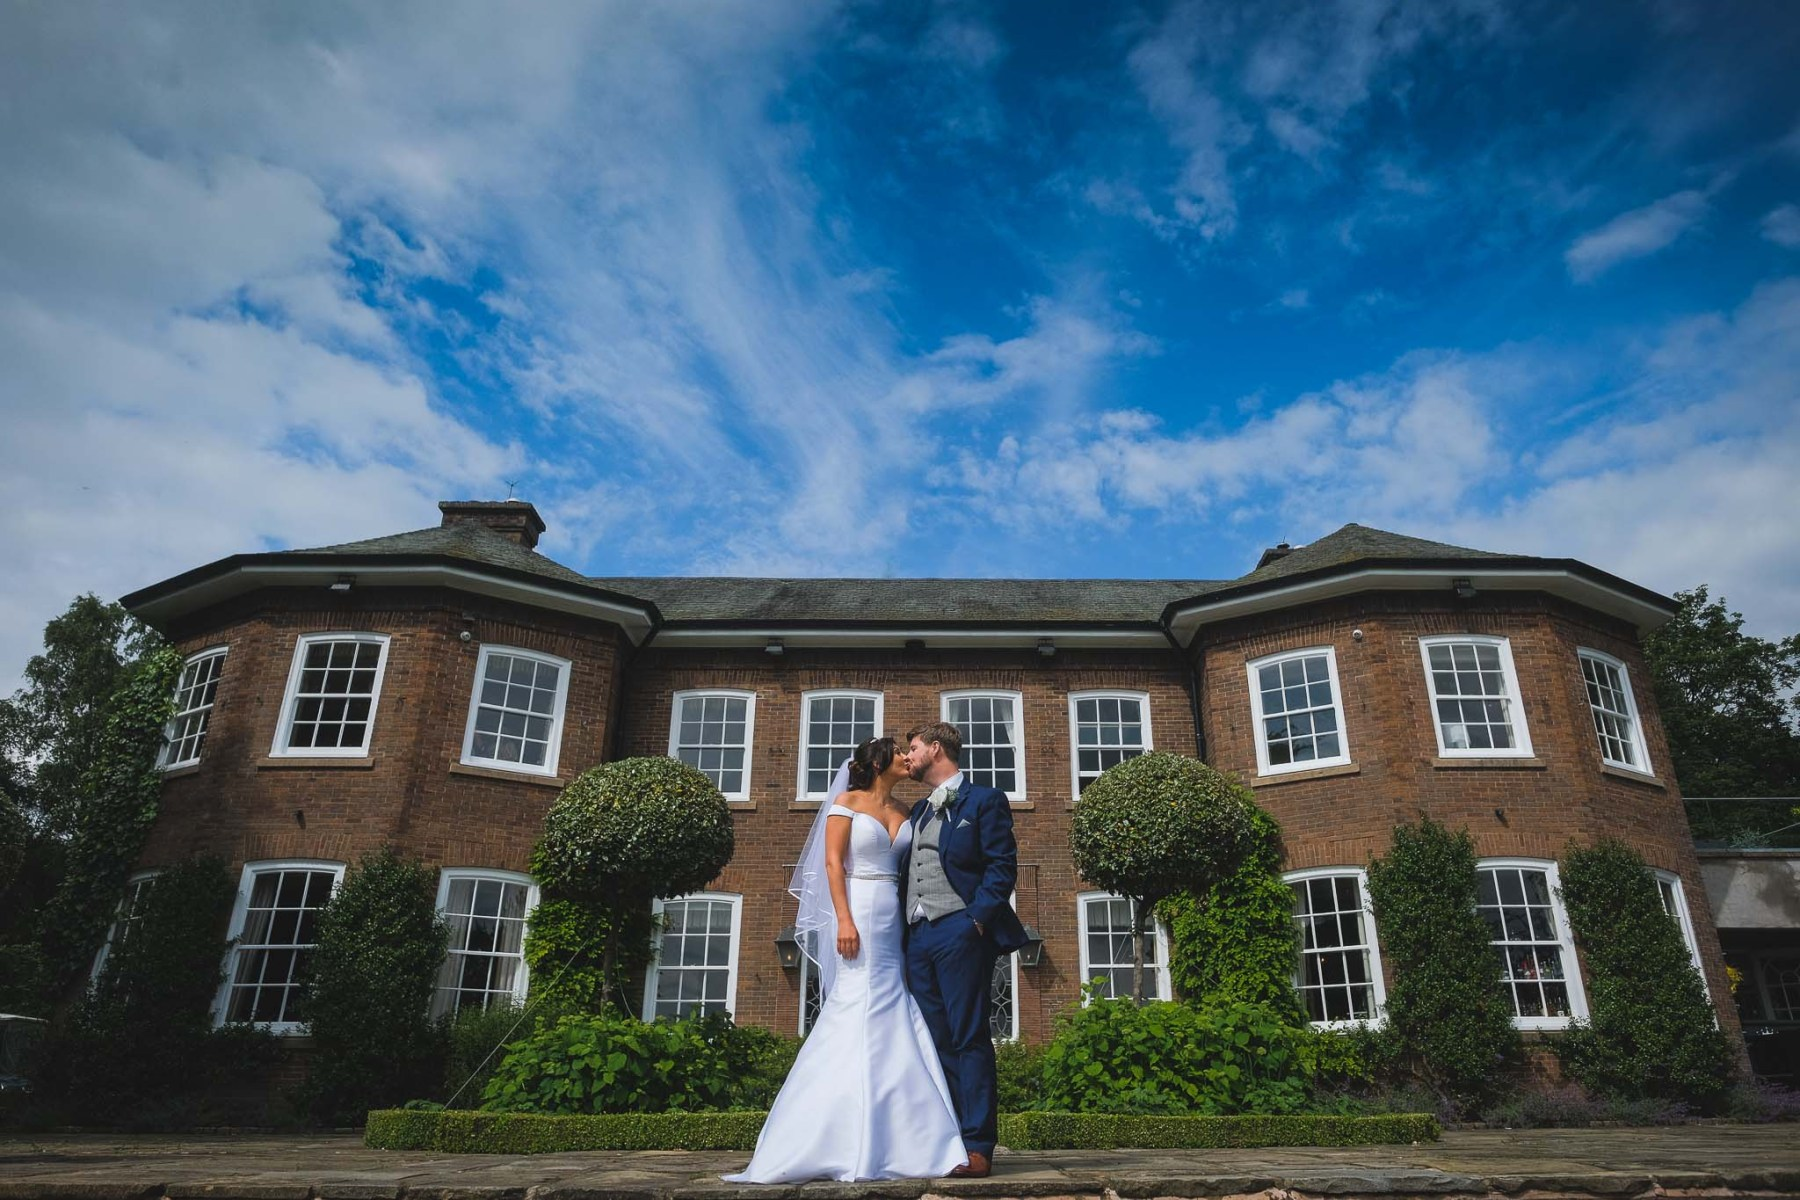 Cheshire Wedding Photographers at Delamere Manor